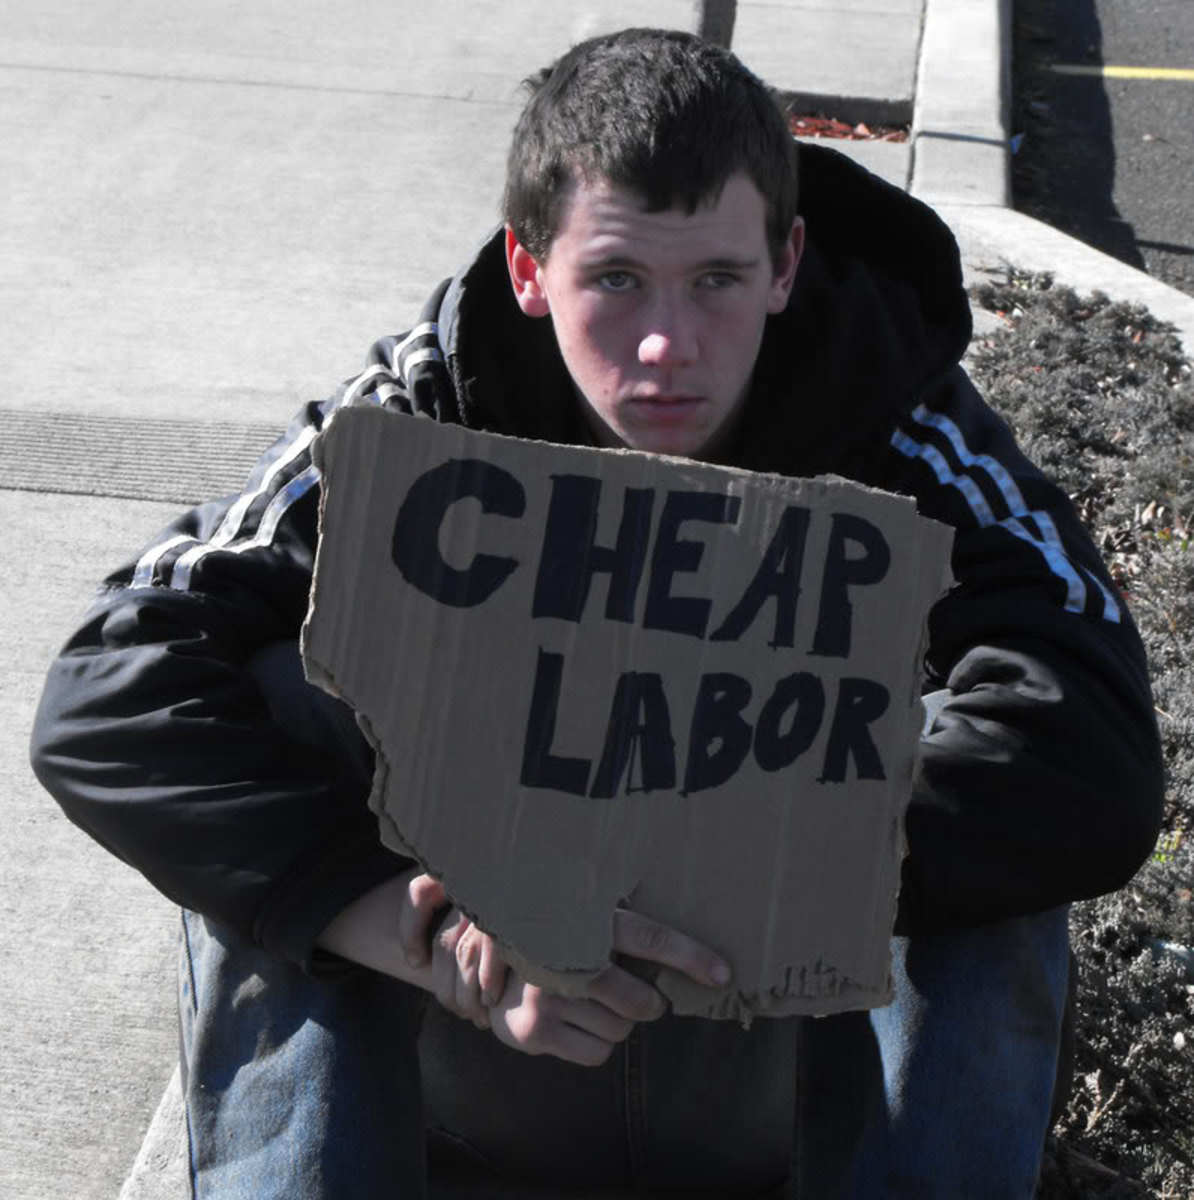 An American Who is Desperate for Work.